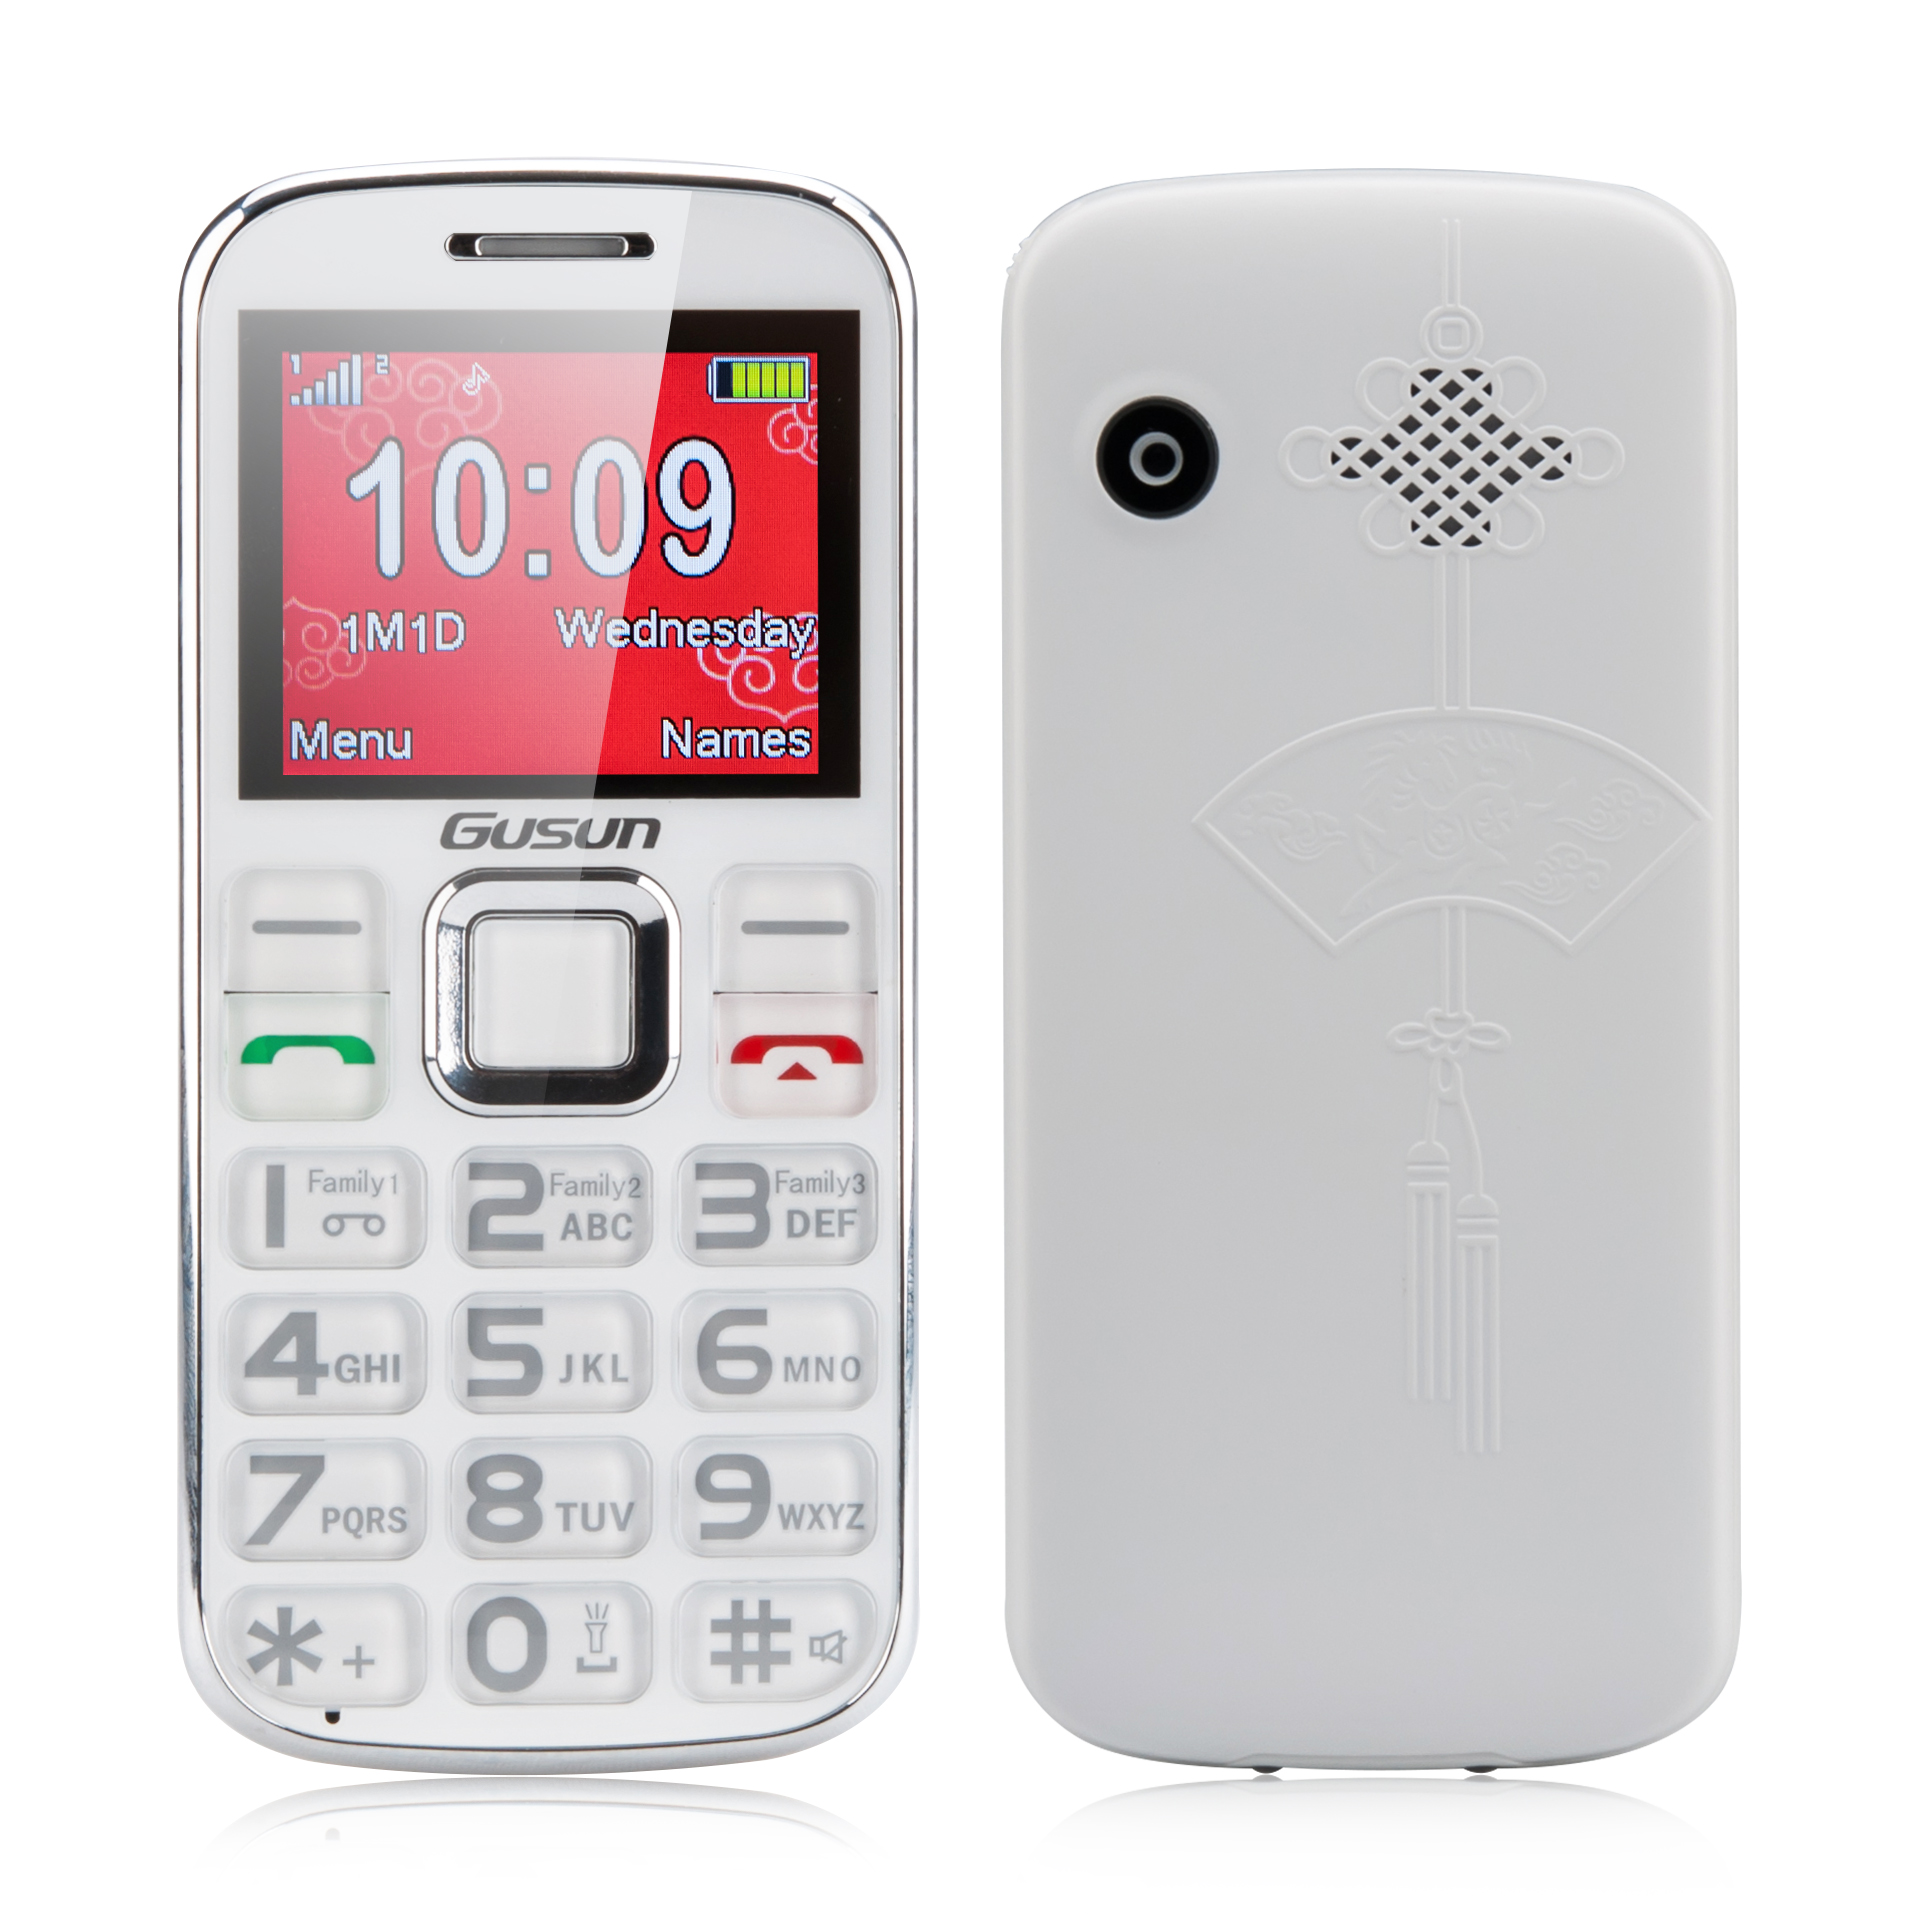 Gusun F10 Dual SIM Quad Band Senior Citizen Phone - 2 Inch Display, FM Radio, LED Torch (White)